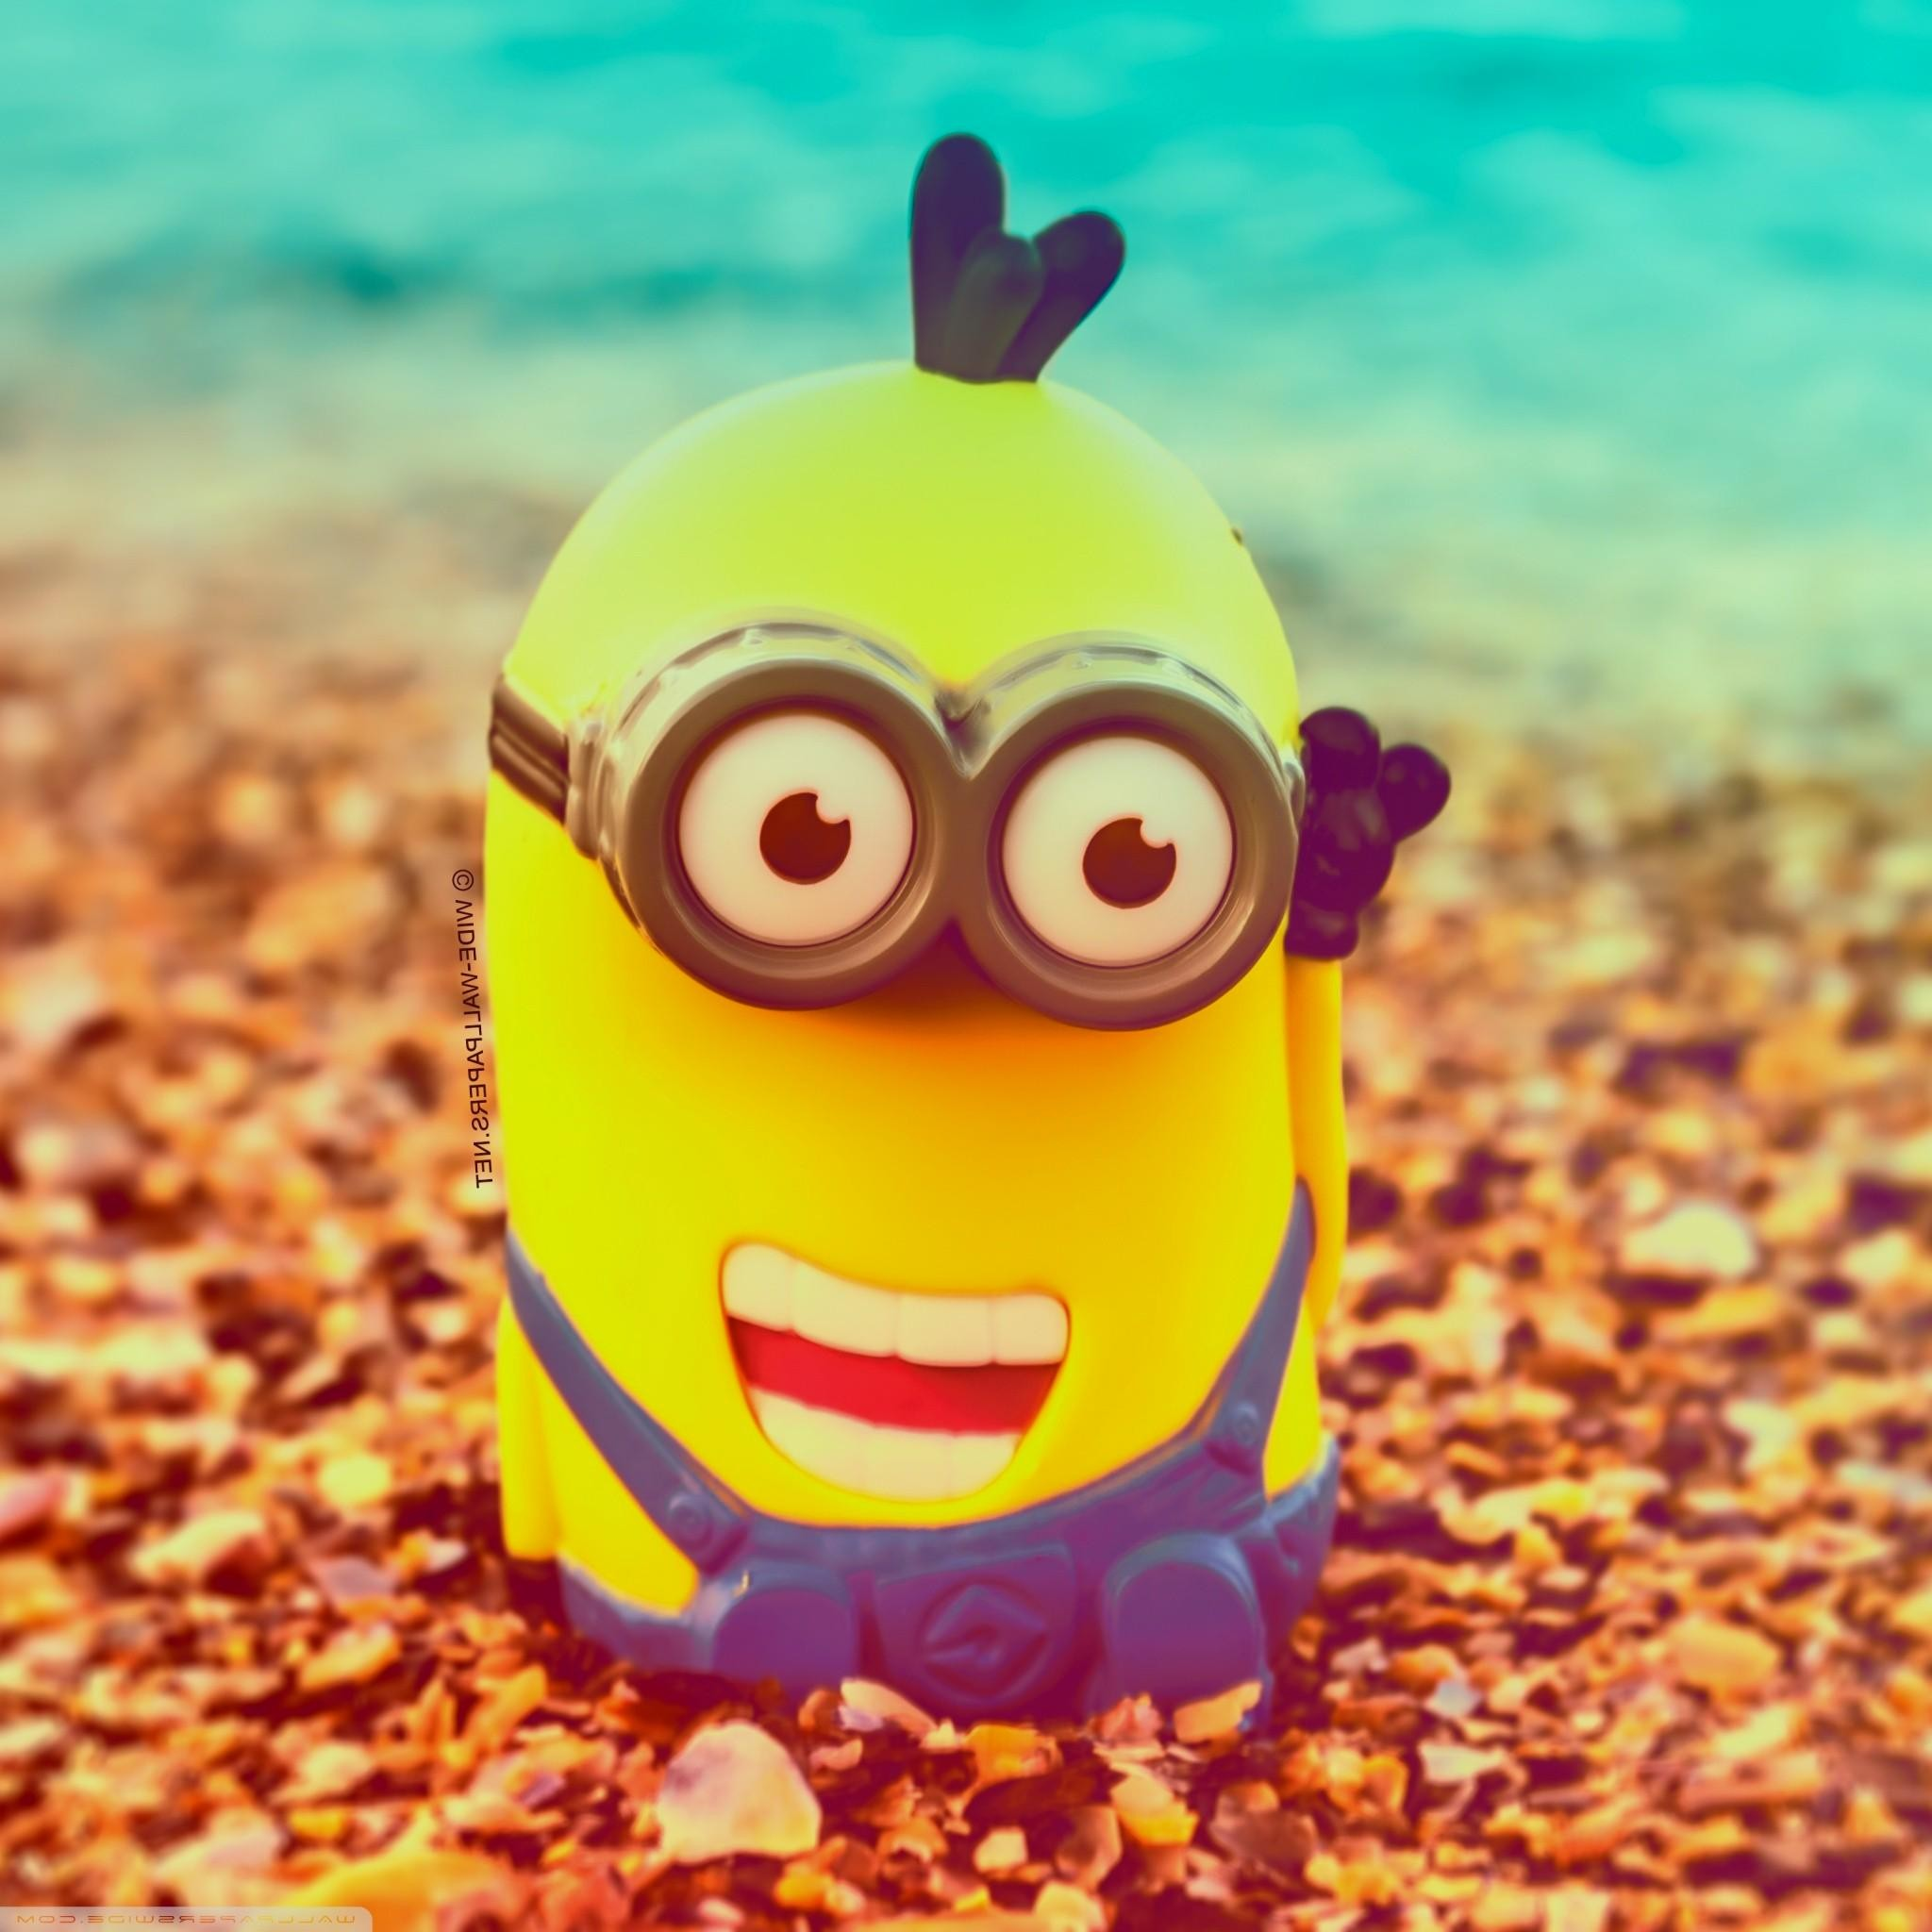 cute minions wallpaper for ipad Wallpaper Sources iPad Wallpaper 2048x2048